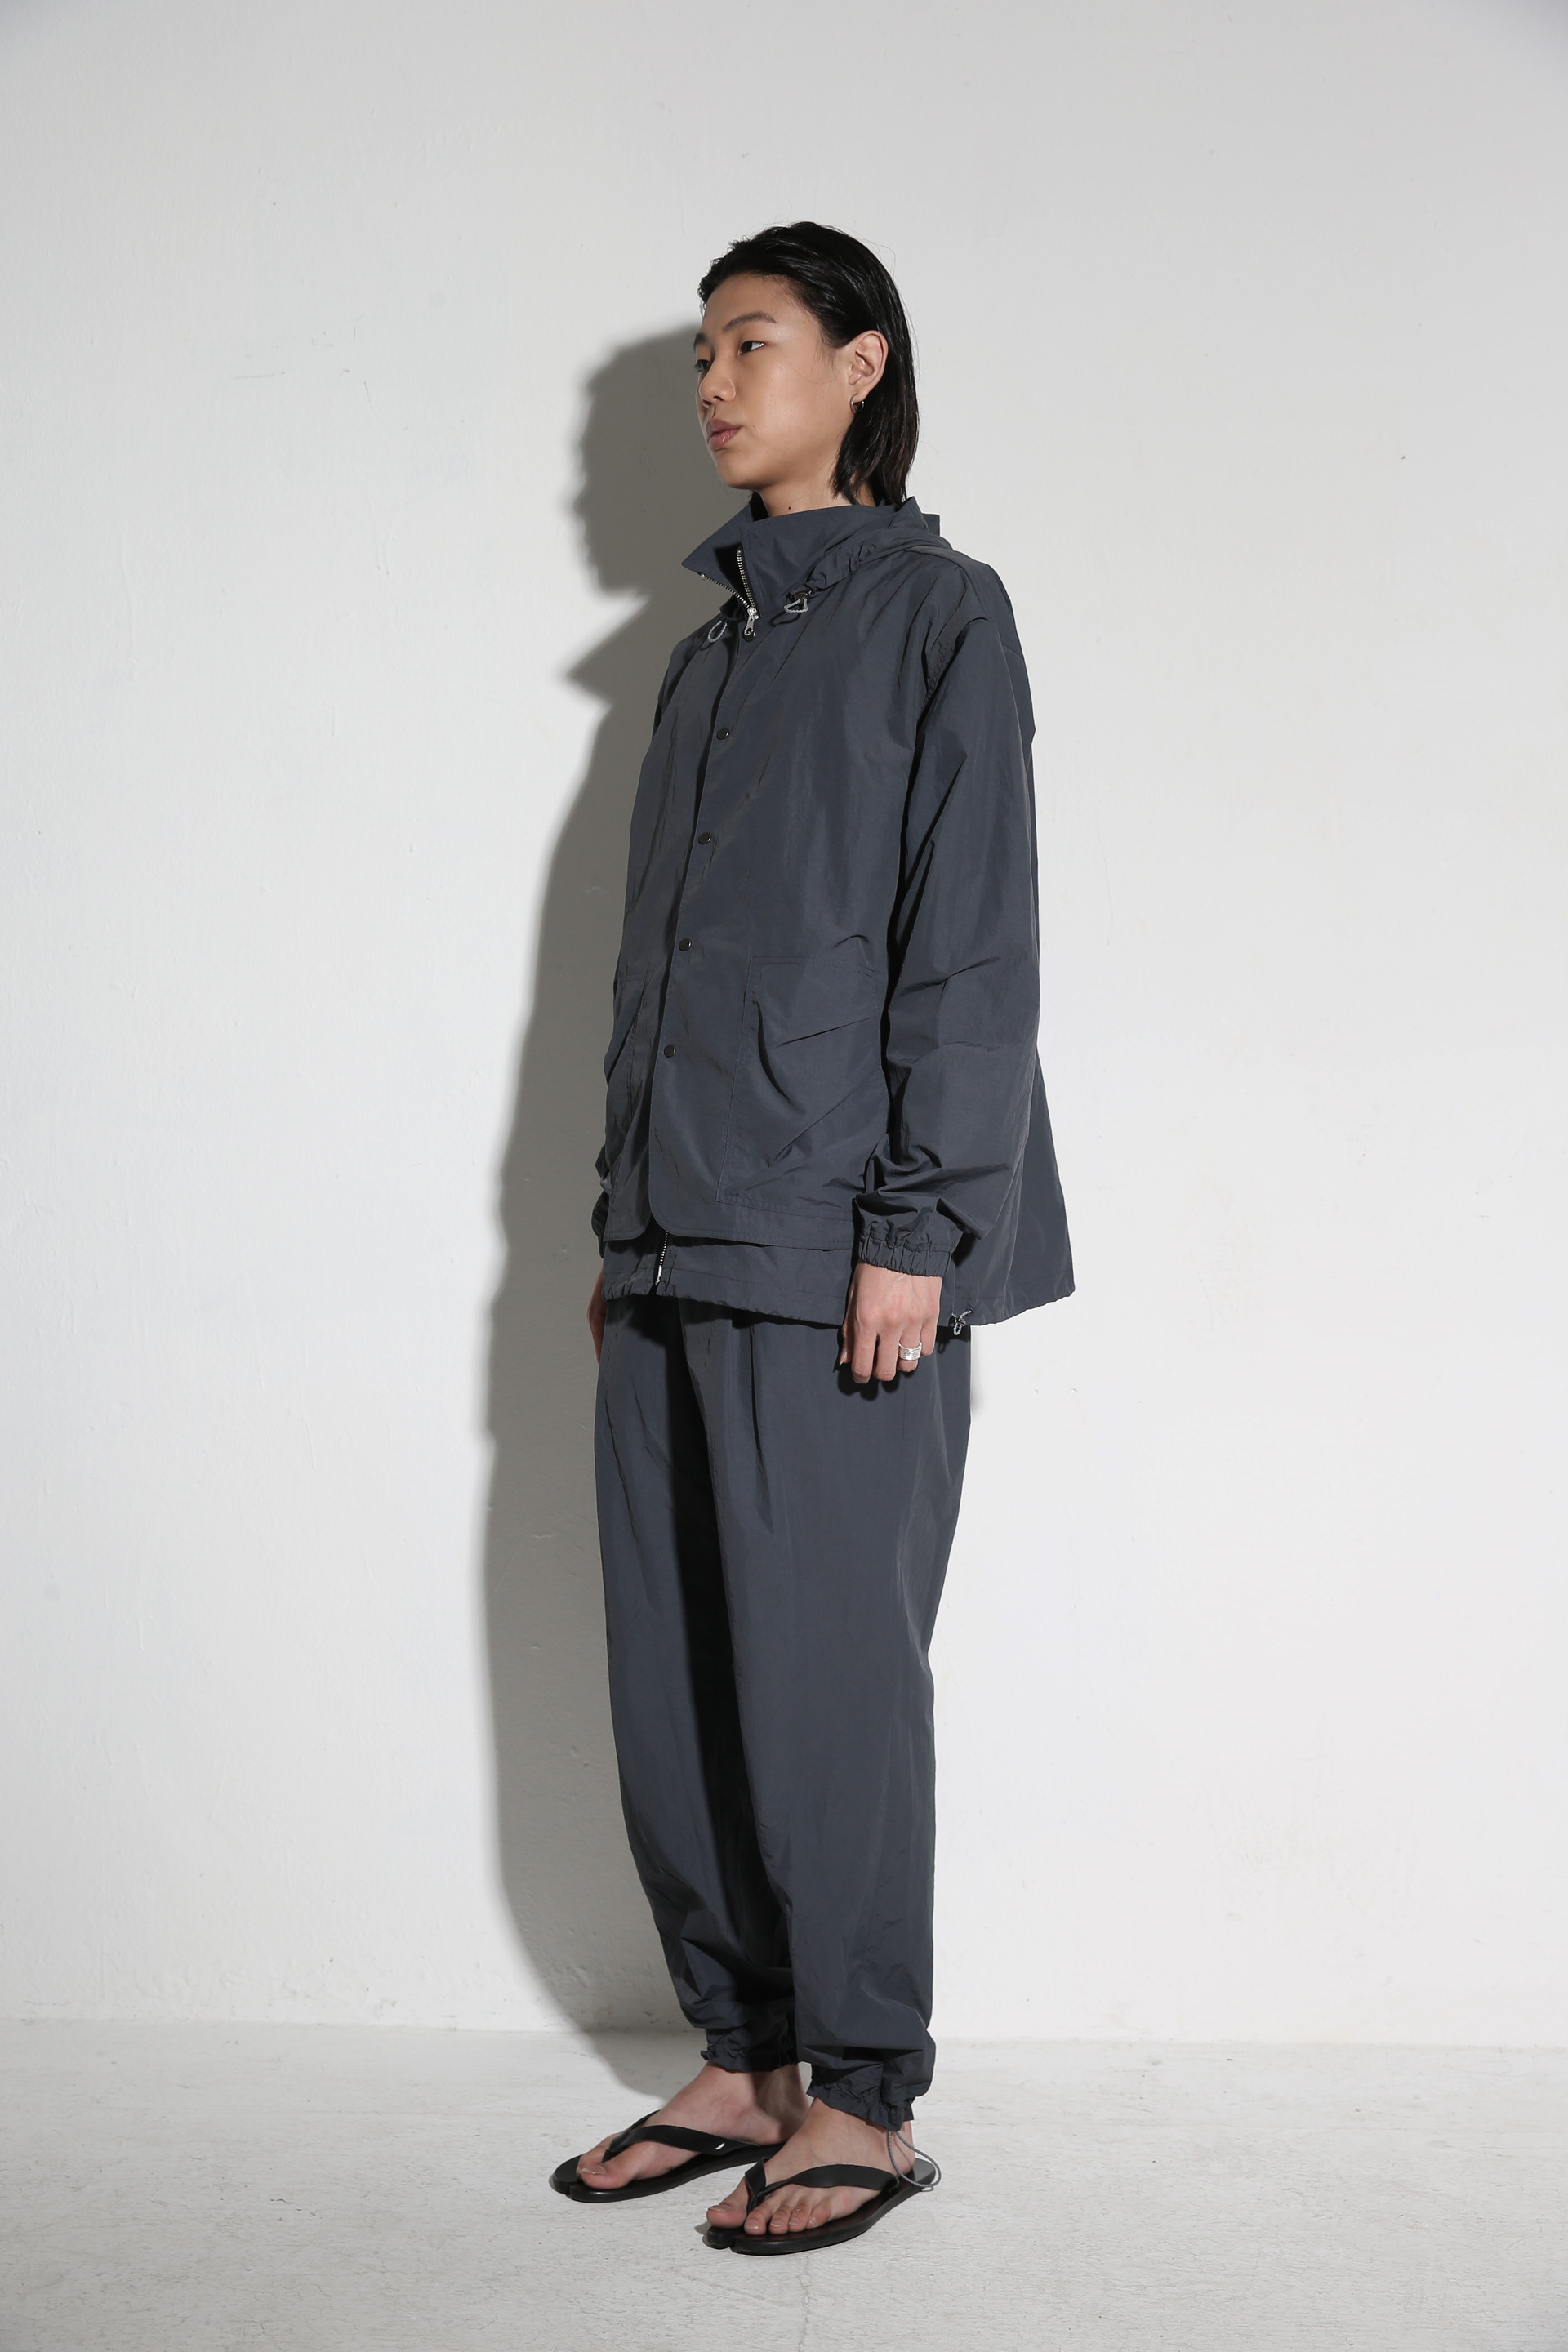 Look 9 - SS21